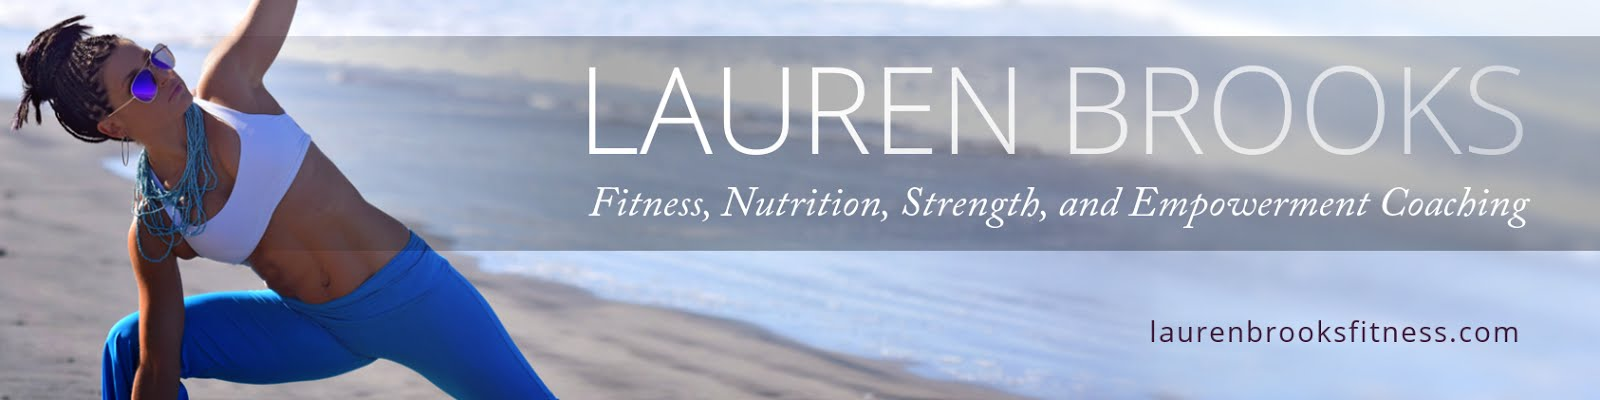 Lauren Brooks Fitness